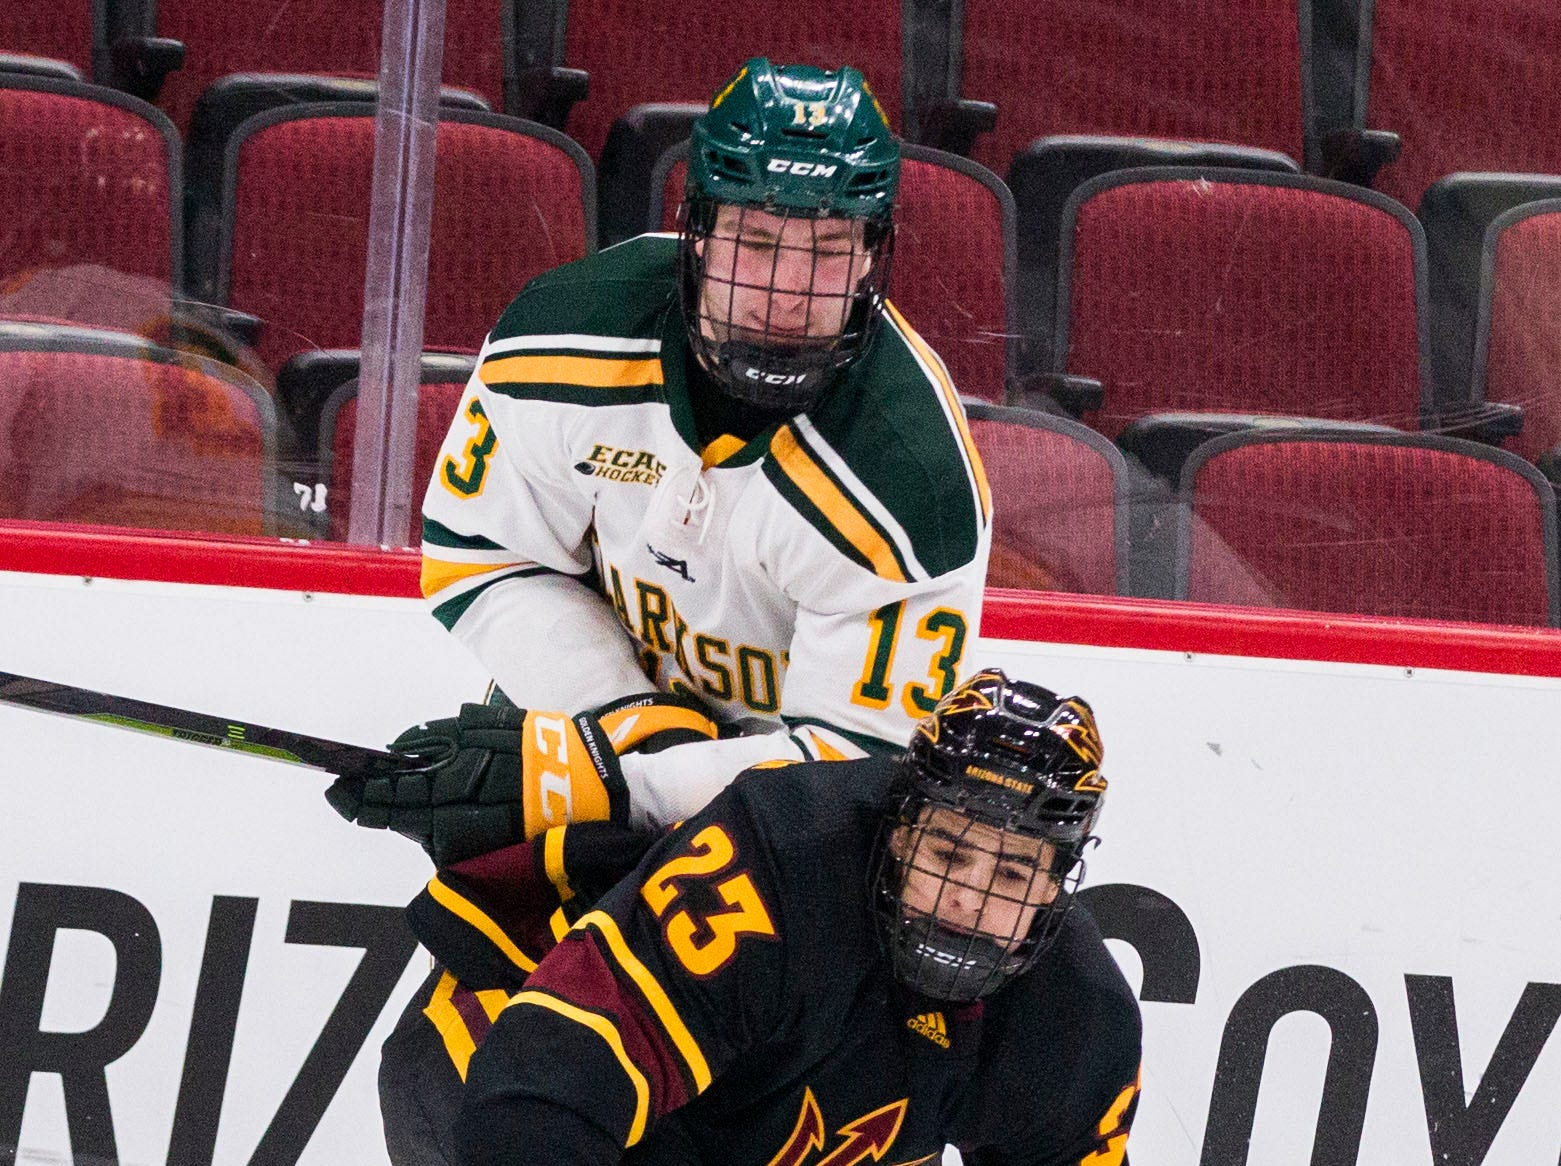 Arizona State University's Demetrios Koumontzis (23) loses the puck against Clarkson's Aaron Thow(13) during the second period of their game in the 2018 Desert Hockey Classic in Glendale, Friday, Dec. 28, 2018.